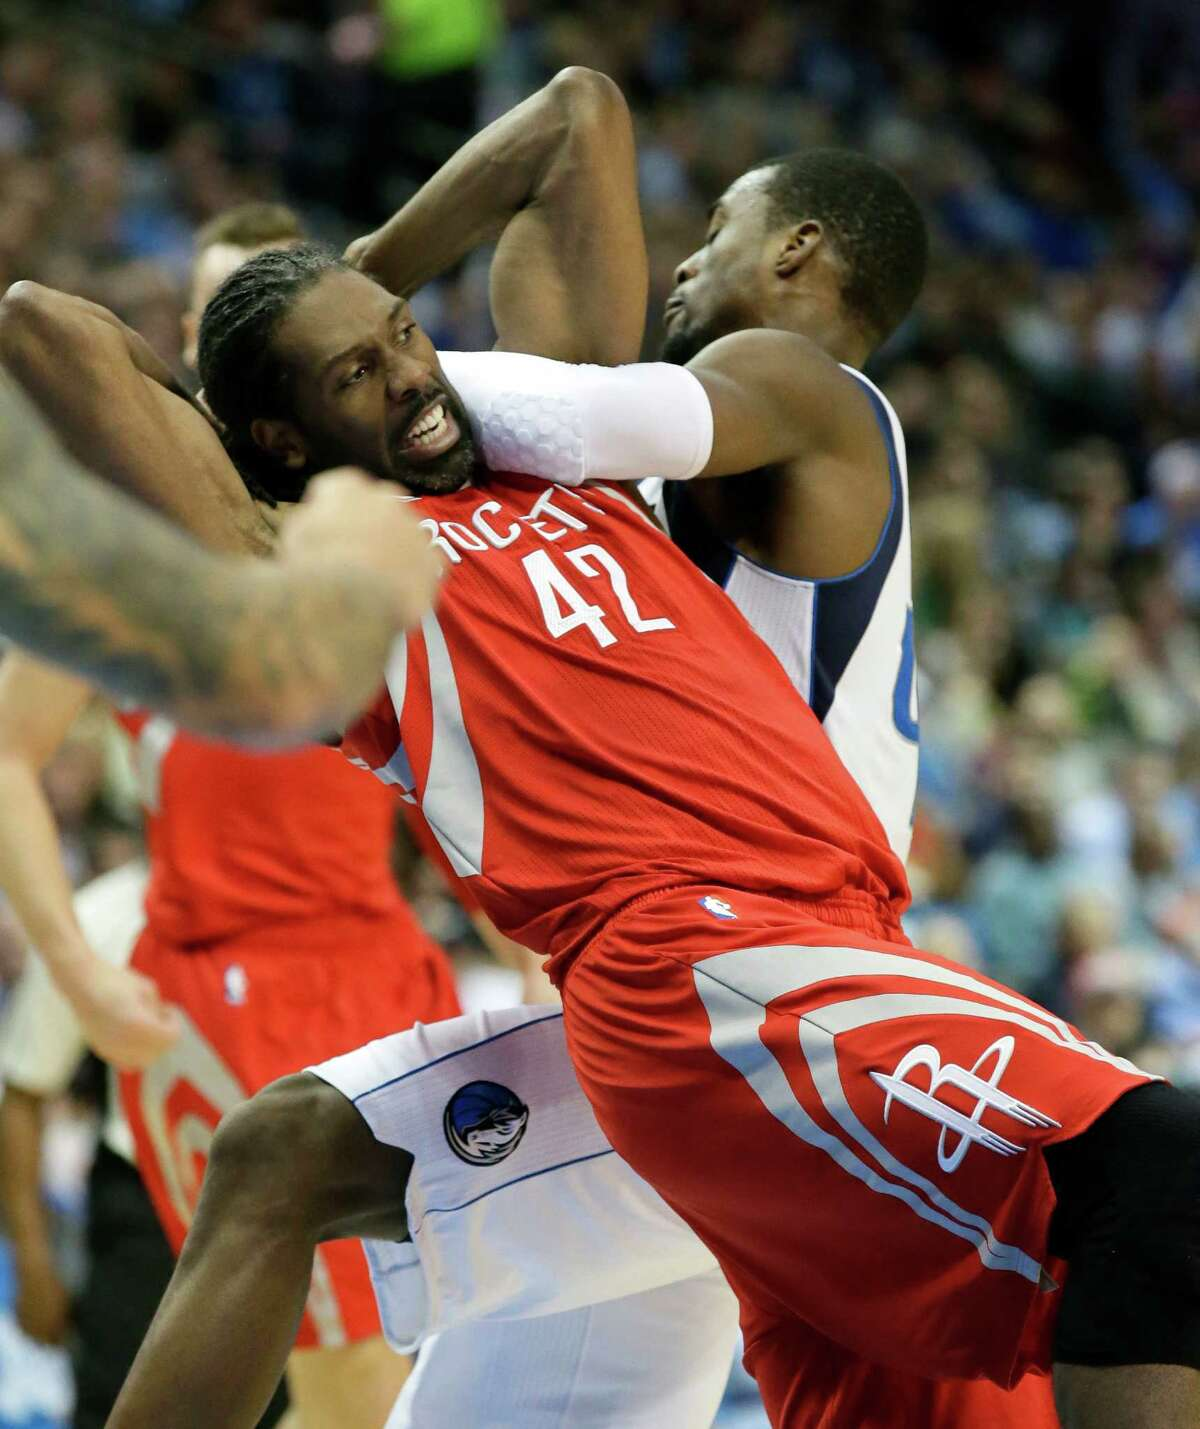 Houston Rockets center Nene Hilario (42) gets tangled up with Dallas Mavericks forward Harrison Barnes (40) while chasing the rebound during the first half of an NBA basketball game in Dallas, Tuesday, Dec. 27, 2016. (AP Photo/LM Otero)